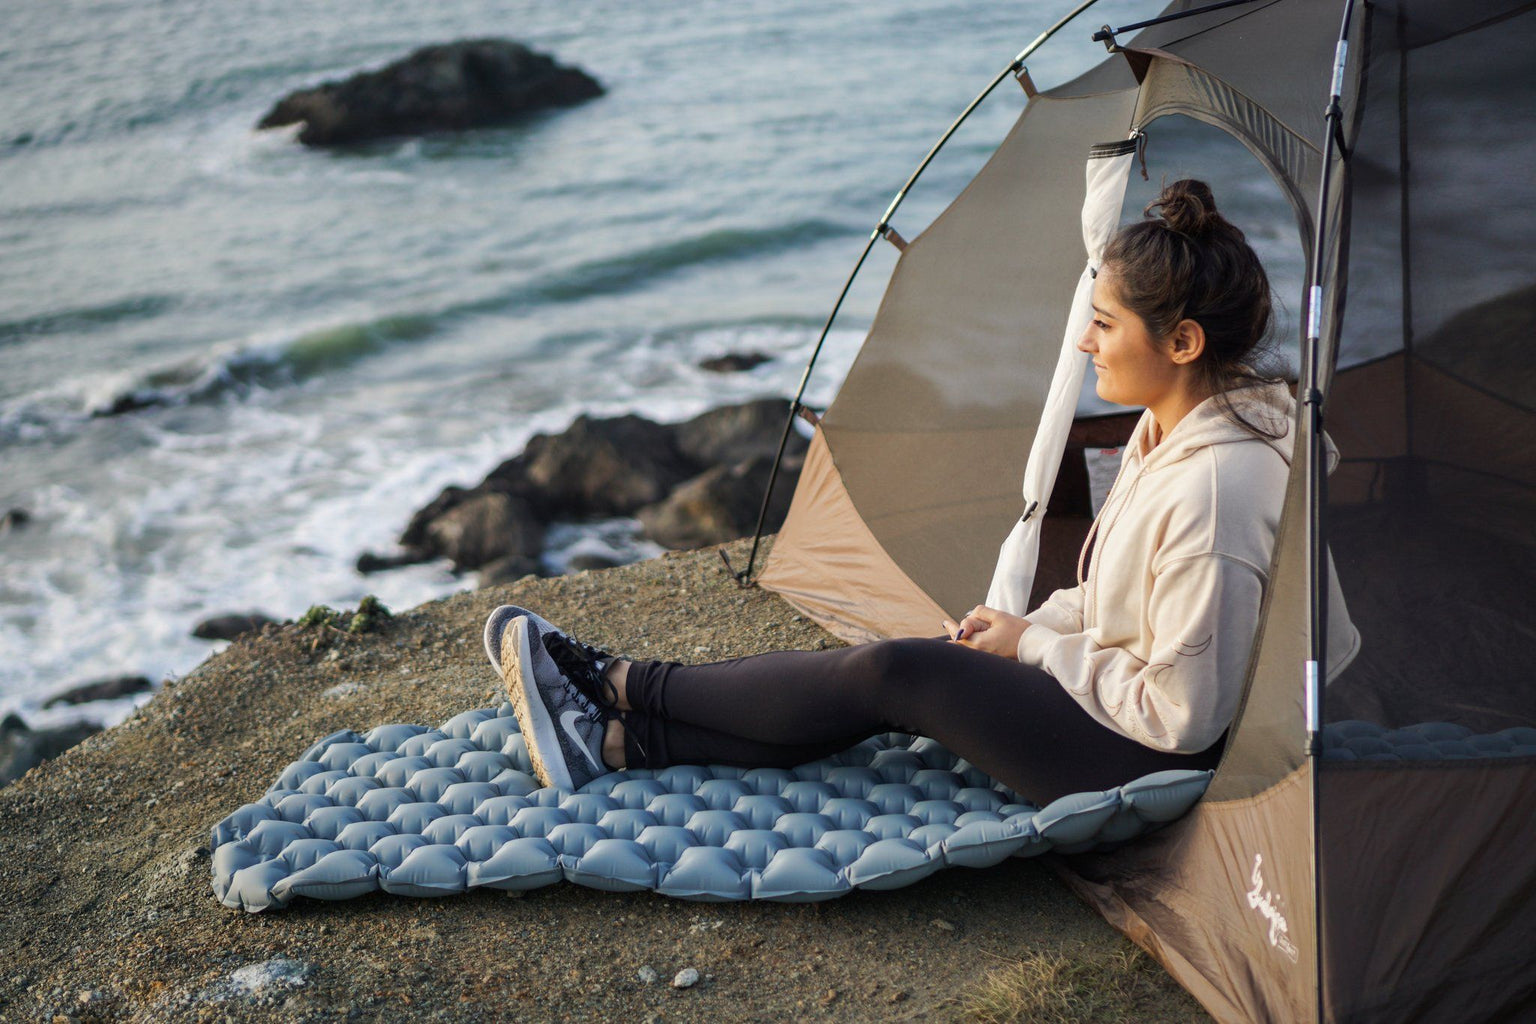 A woman sitting on a sleeping pad.